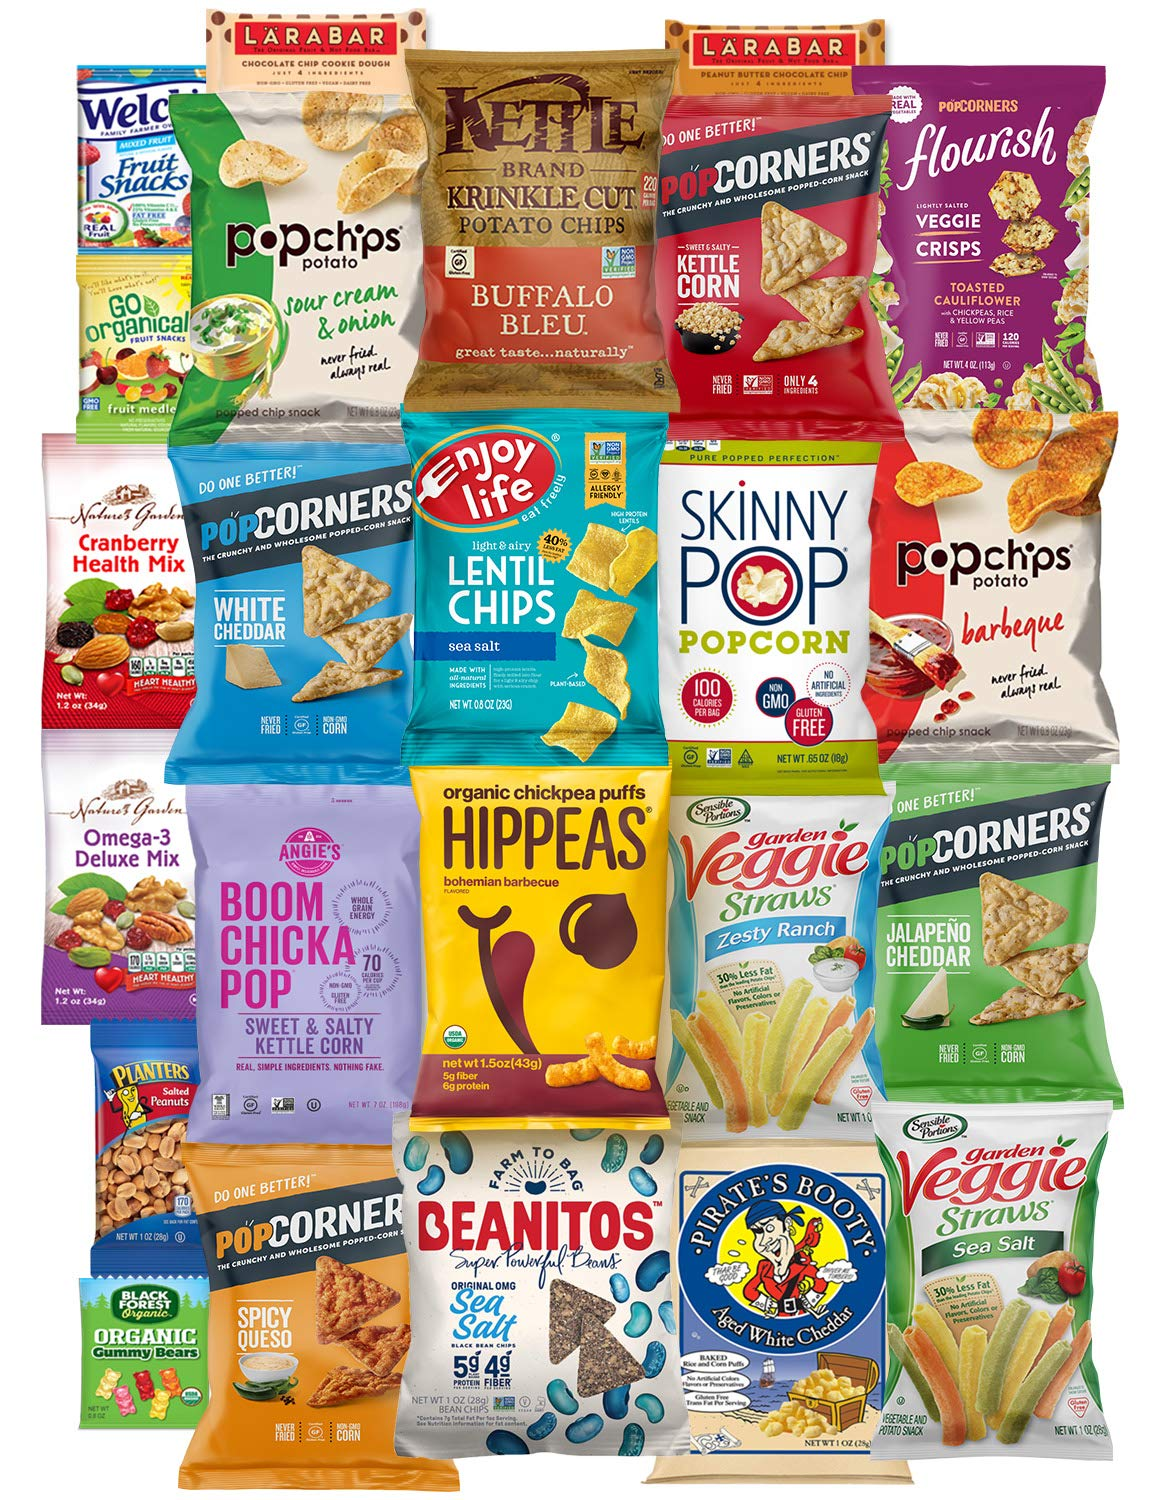 Gluten Free Healthy Snacks, Mixed Bag of Treat Snacks Includes Veggie, Popcorn and Gummy Snacks Care Package (24 Count)